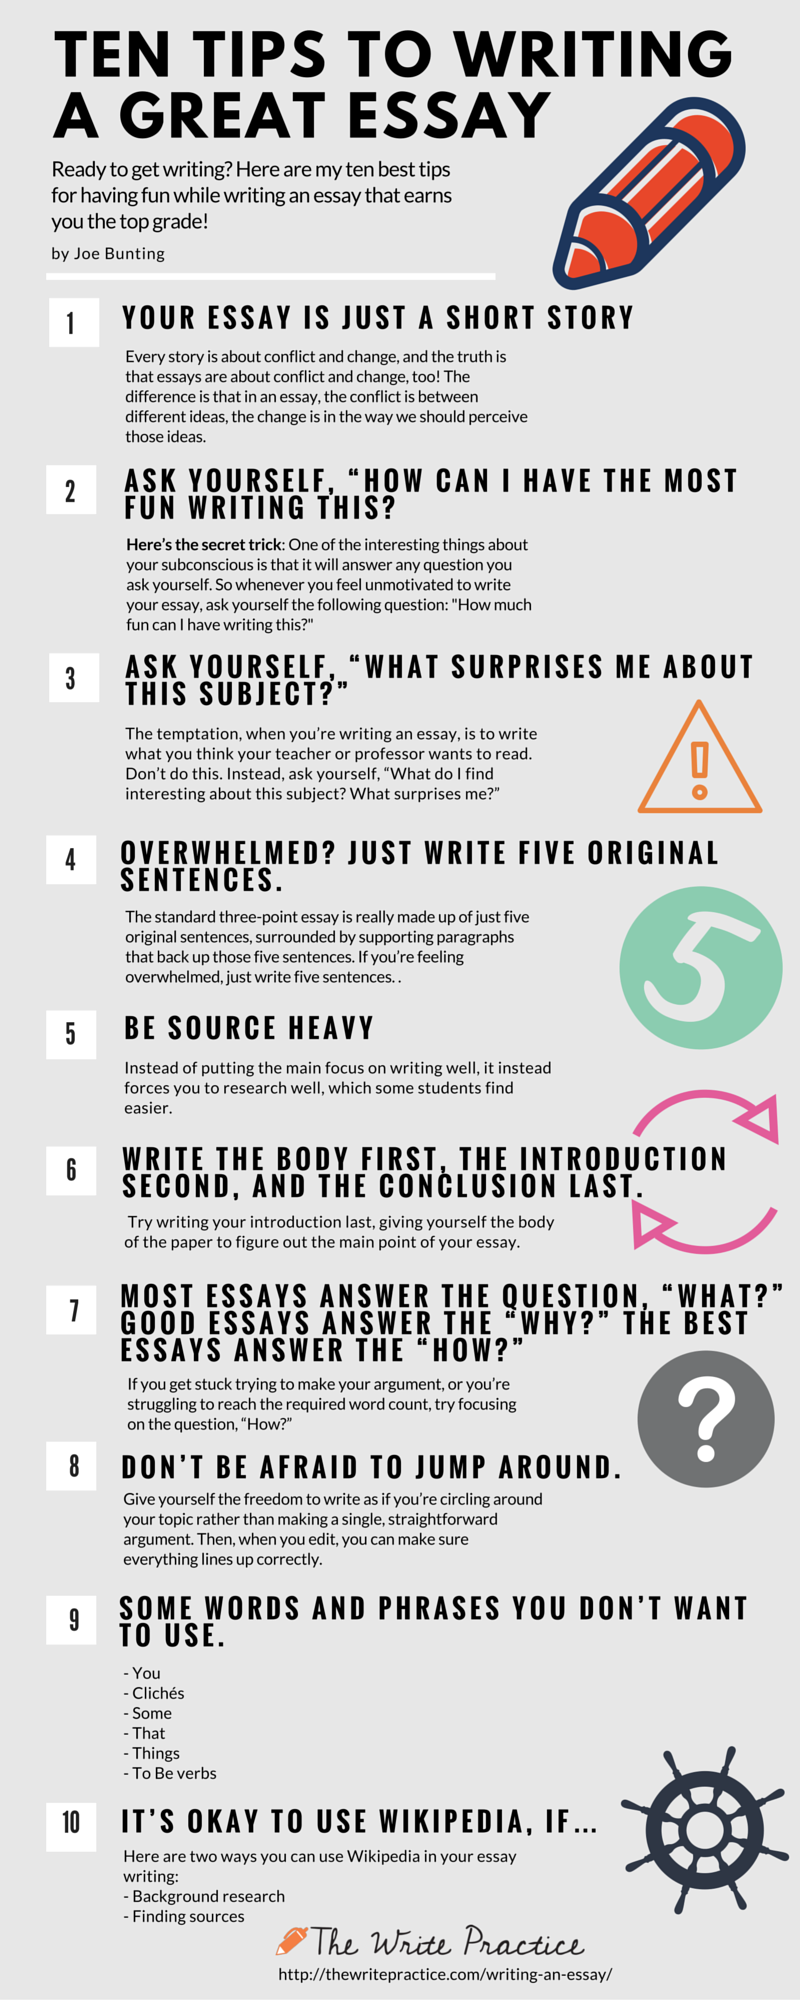 Tips on how to write a